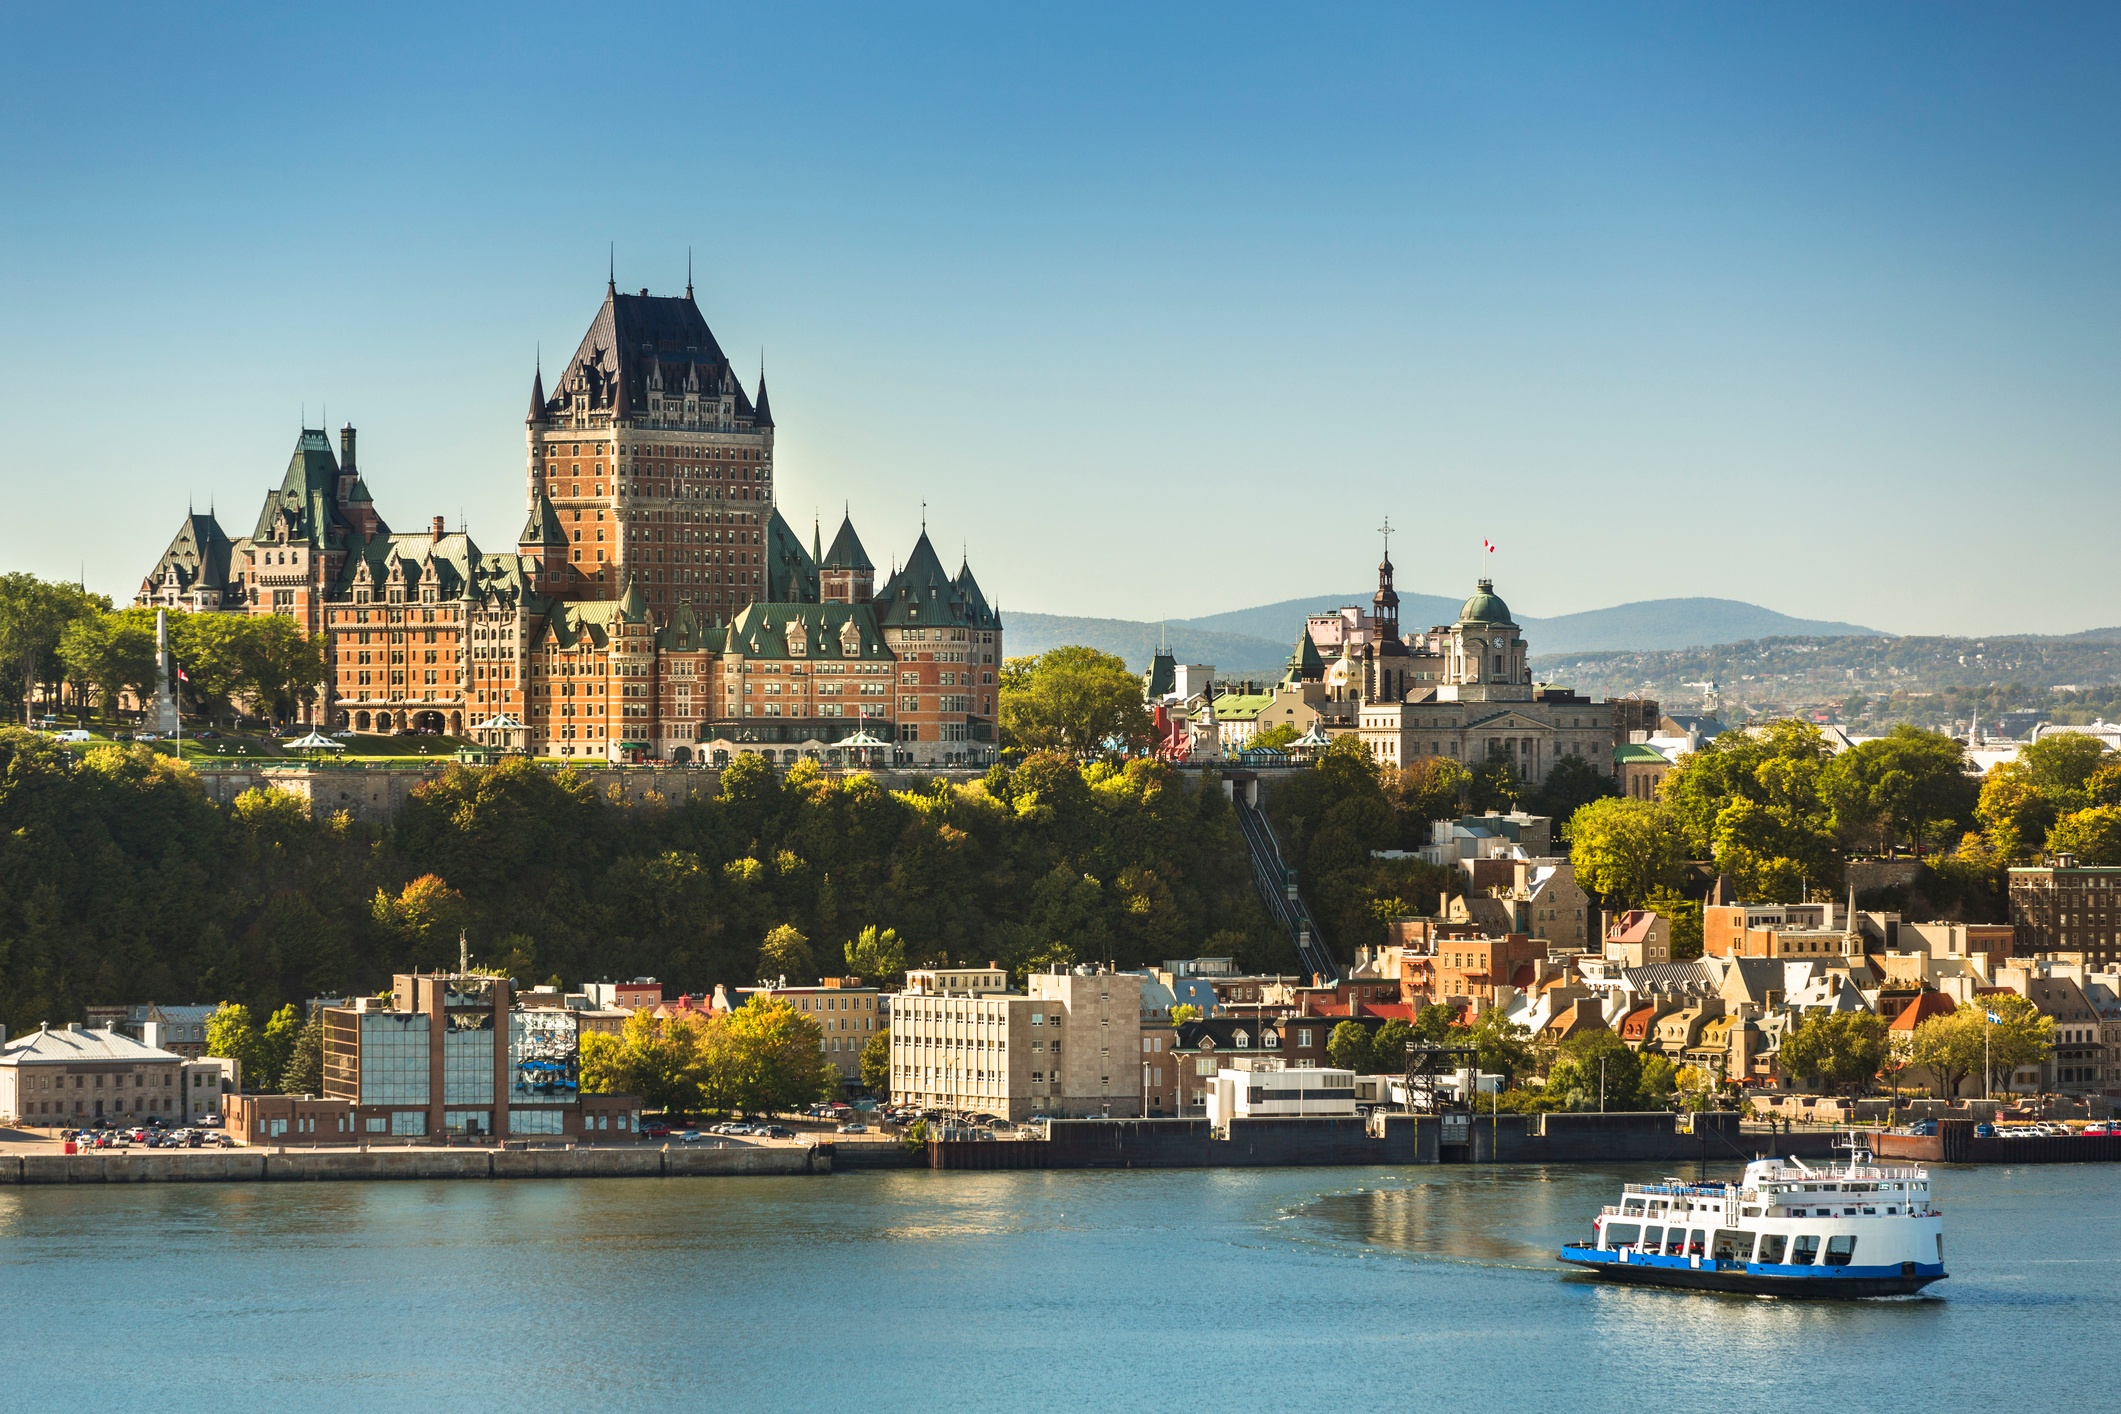 The Straightforward Guide to Understanding Quebec Vacation Pay